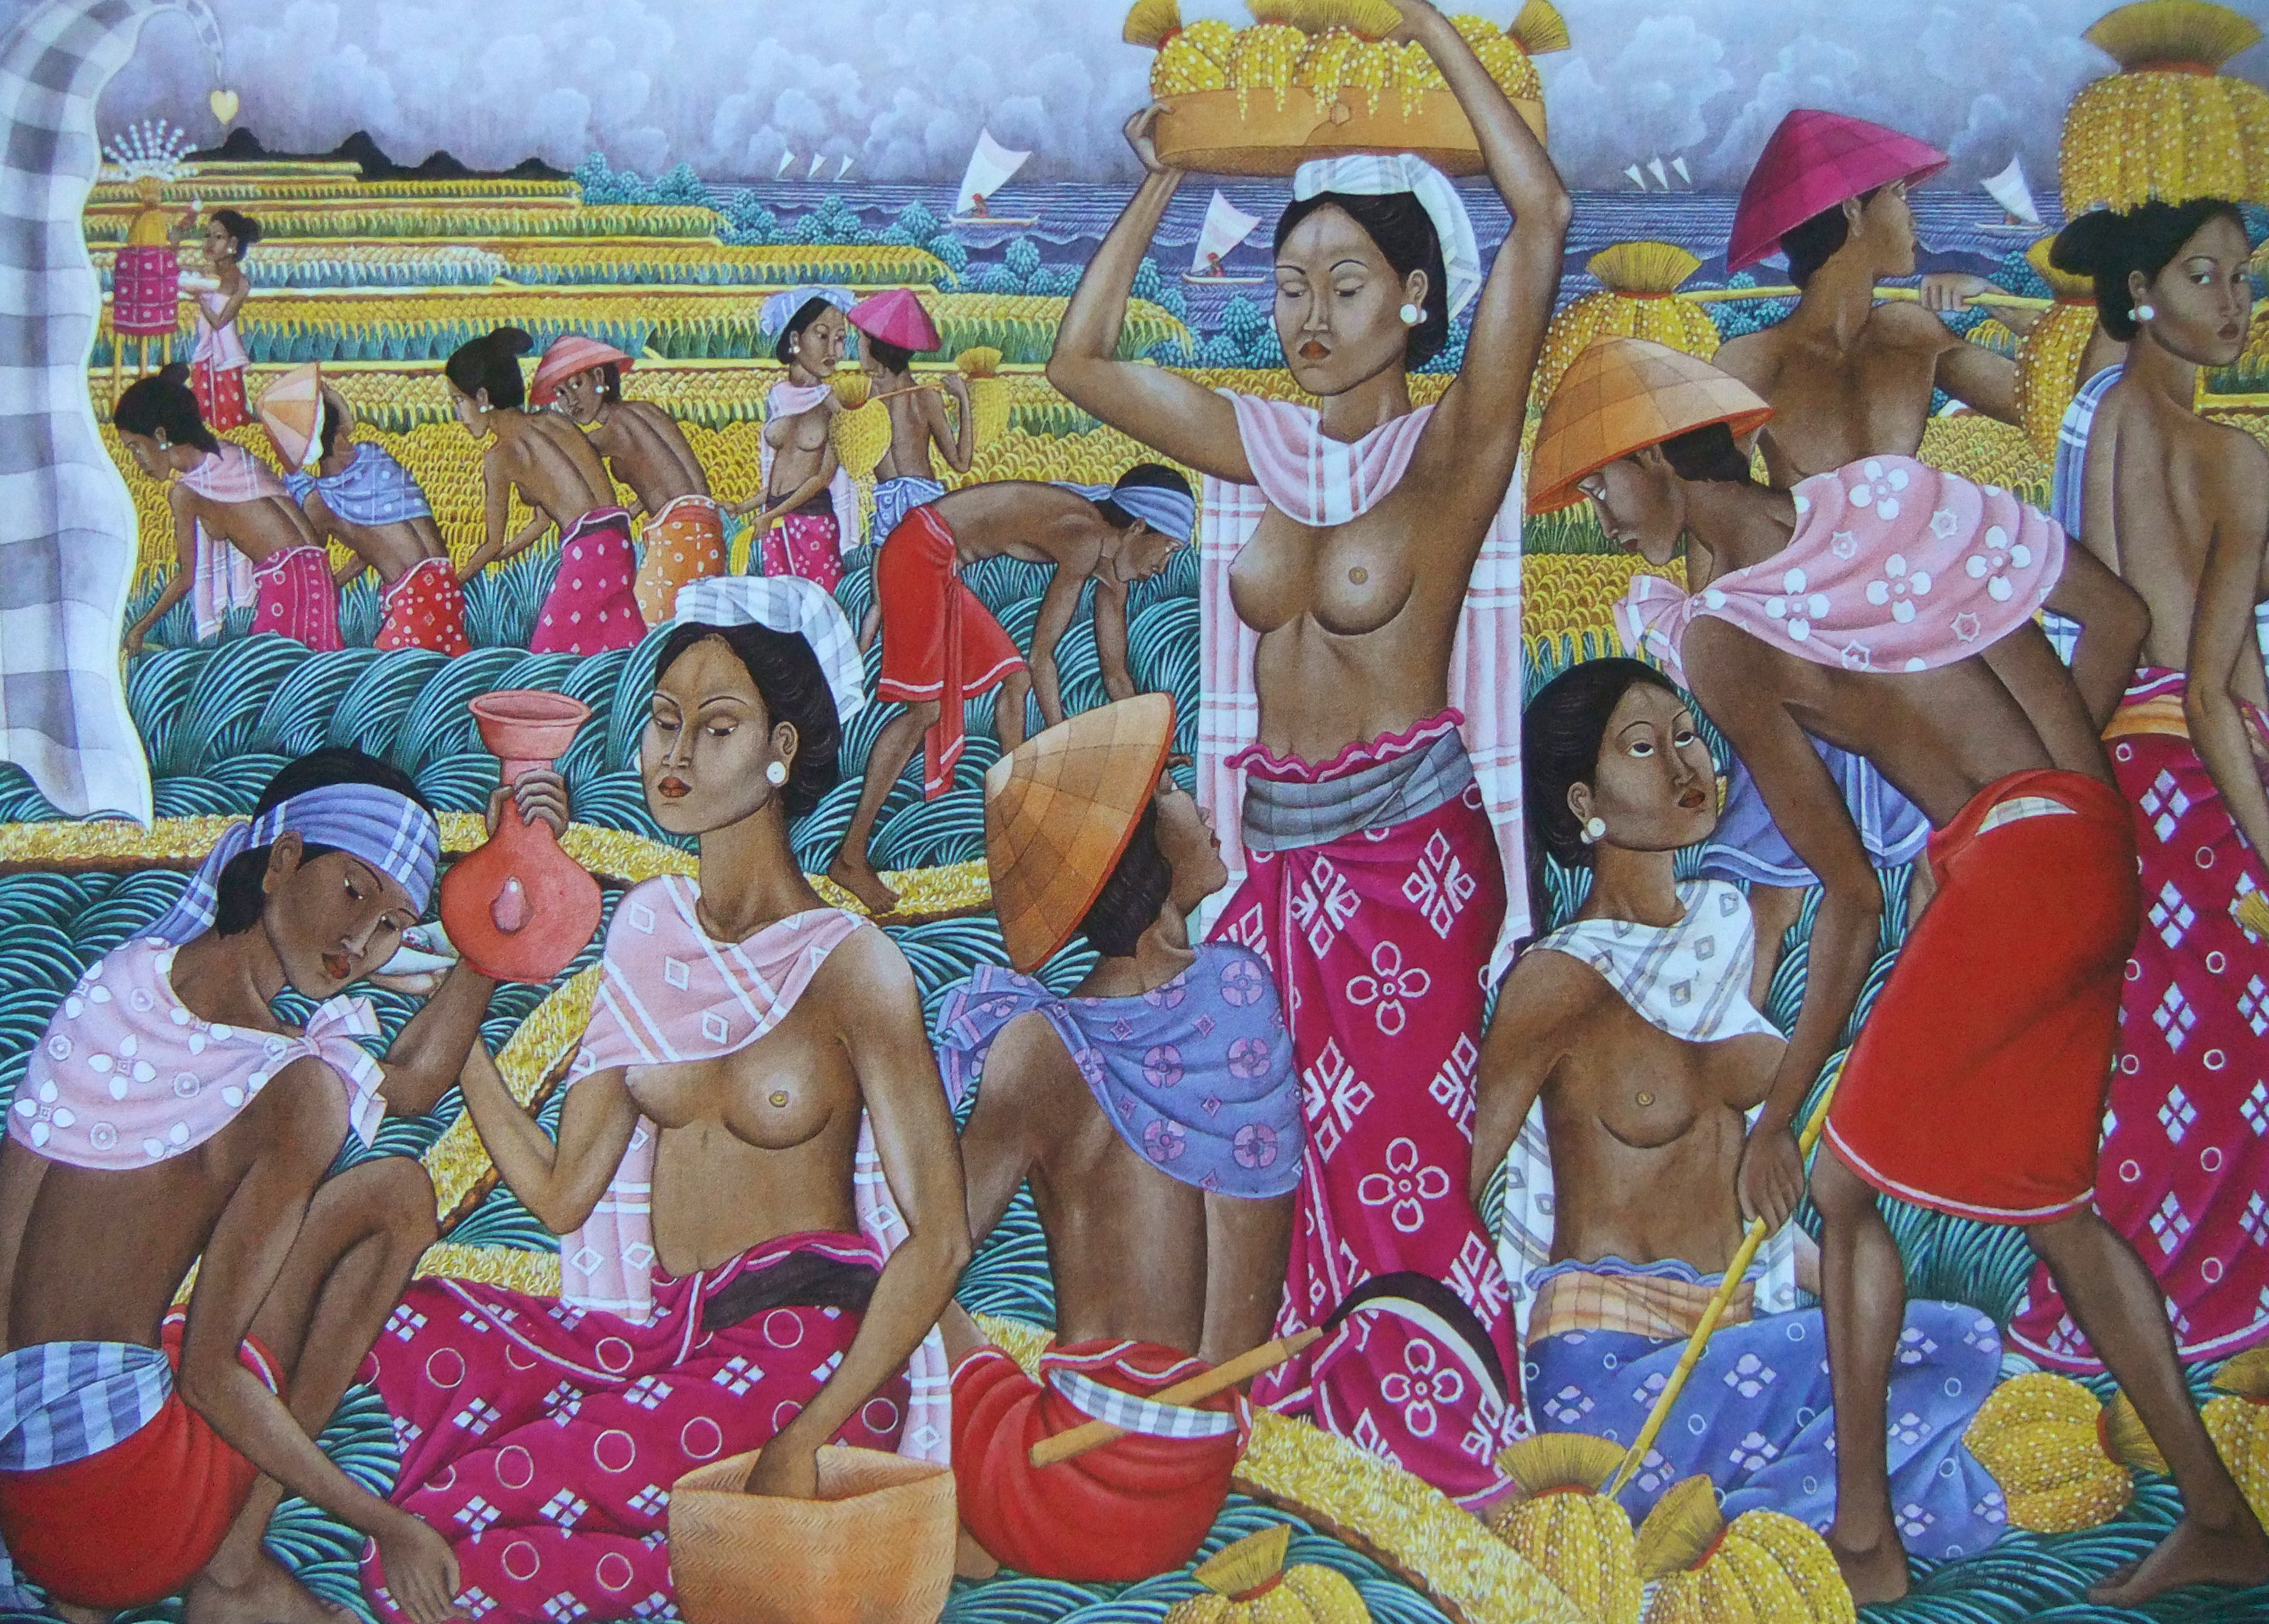 Dewa Putu Bedil, 'Harvest Scene', 1980, acrylic on canvas 136x200cm